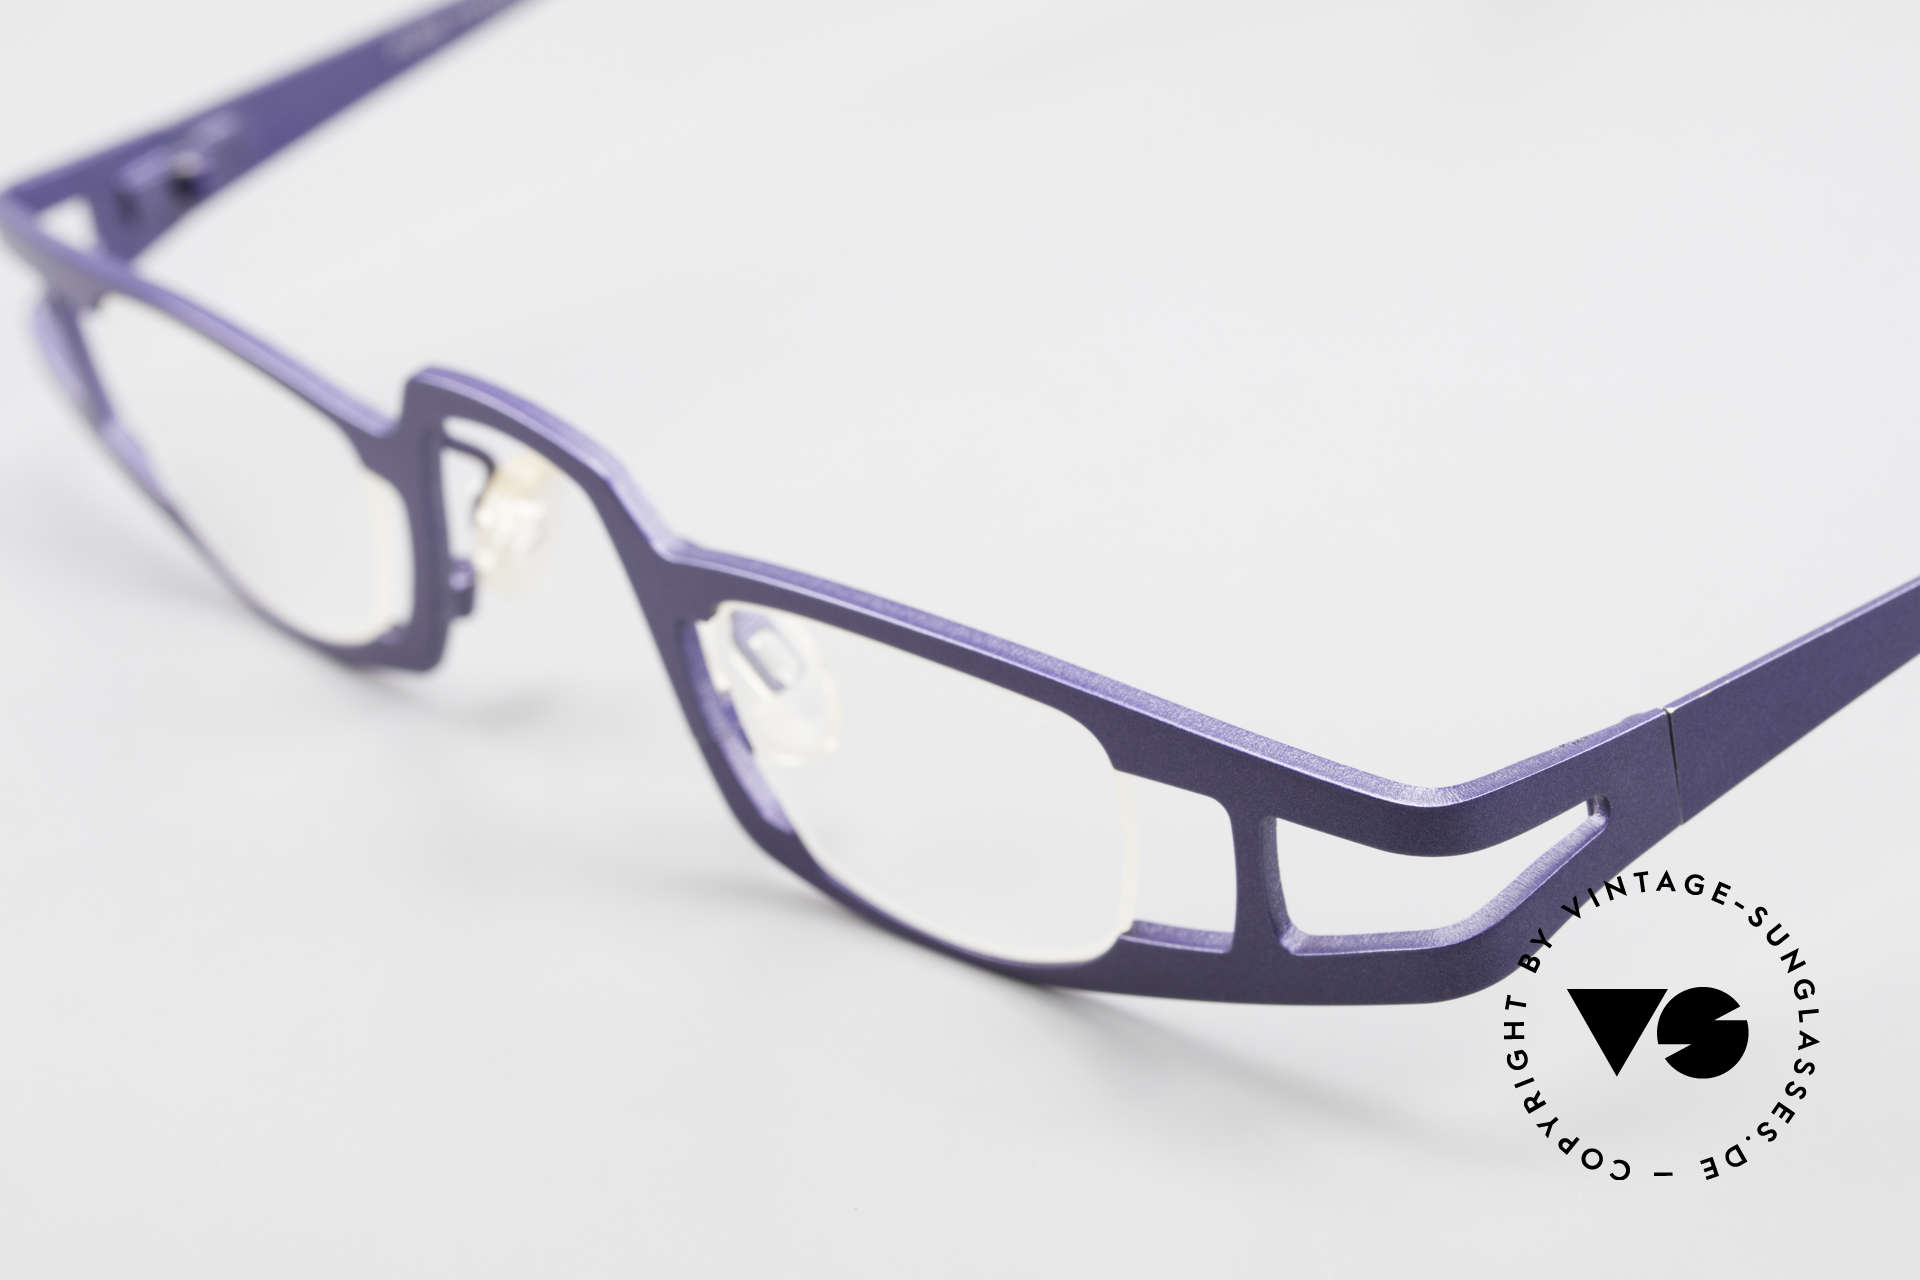 Theo Belgium Eye-Witness KO Pure Titanium Reading Specs, the fancy 'Eye-Witness' series was launched in May '95, Made for Women